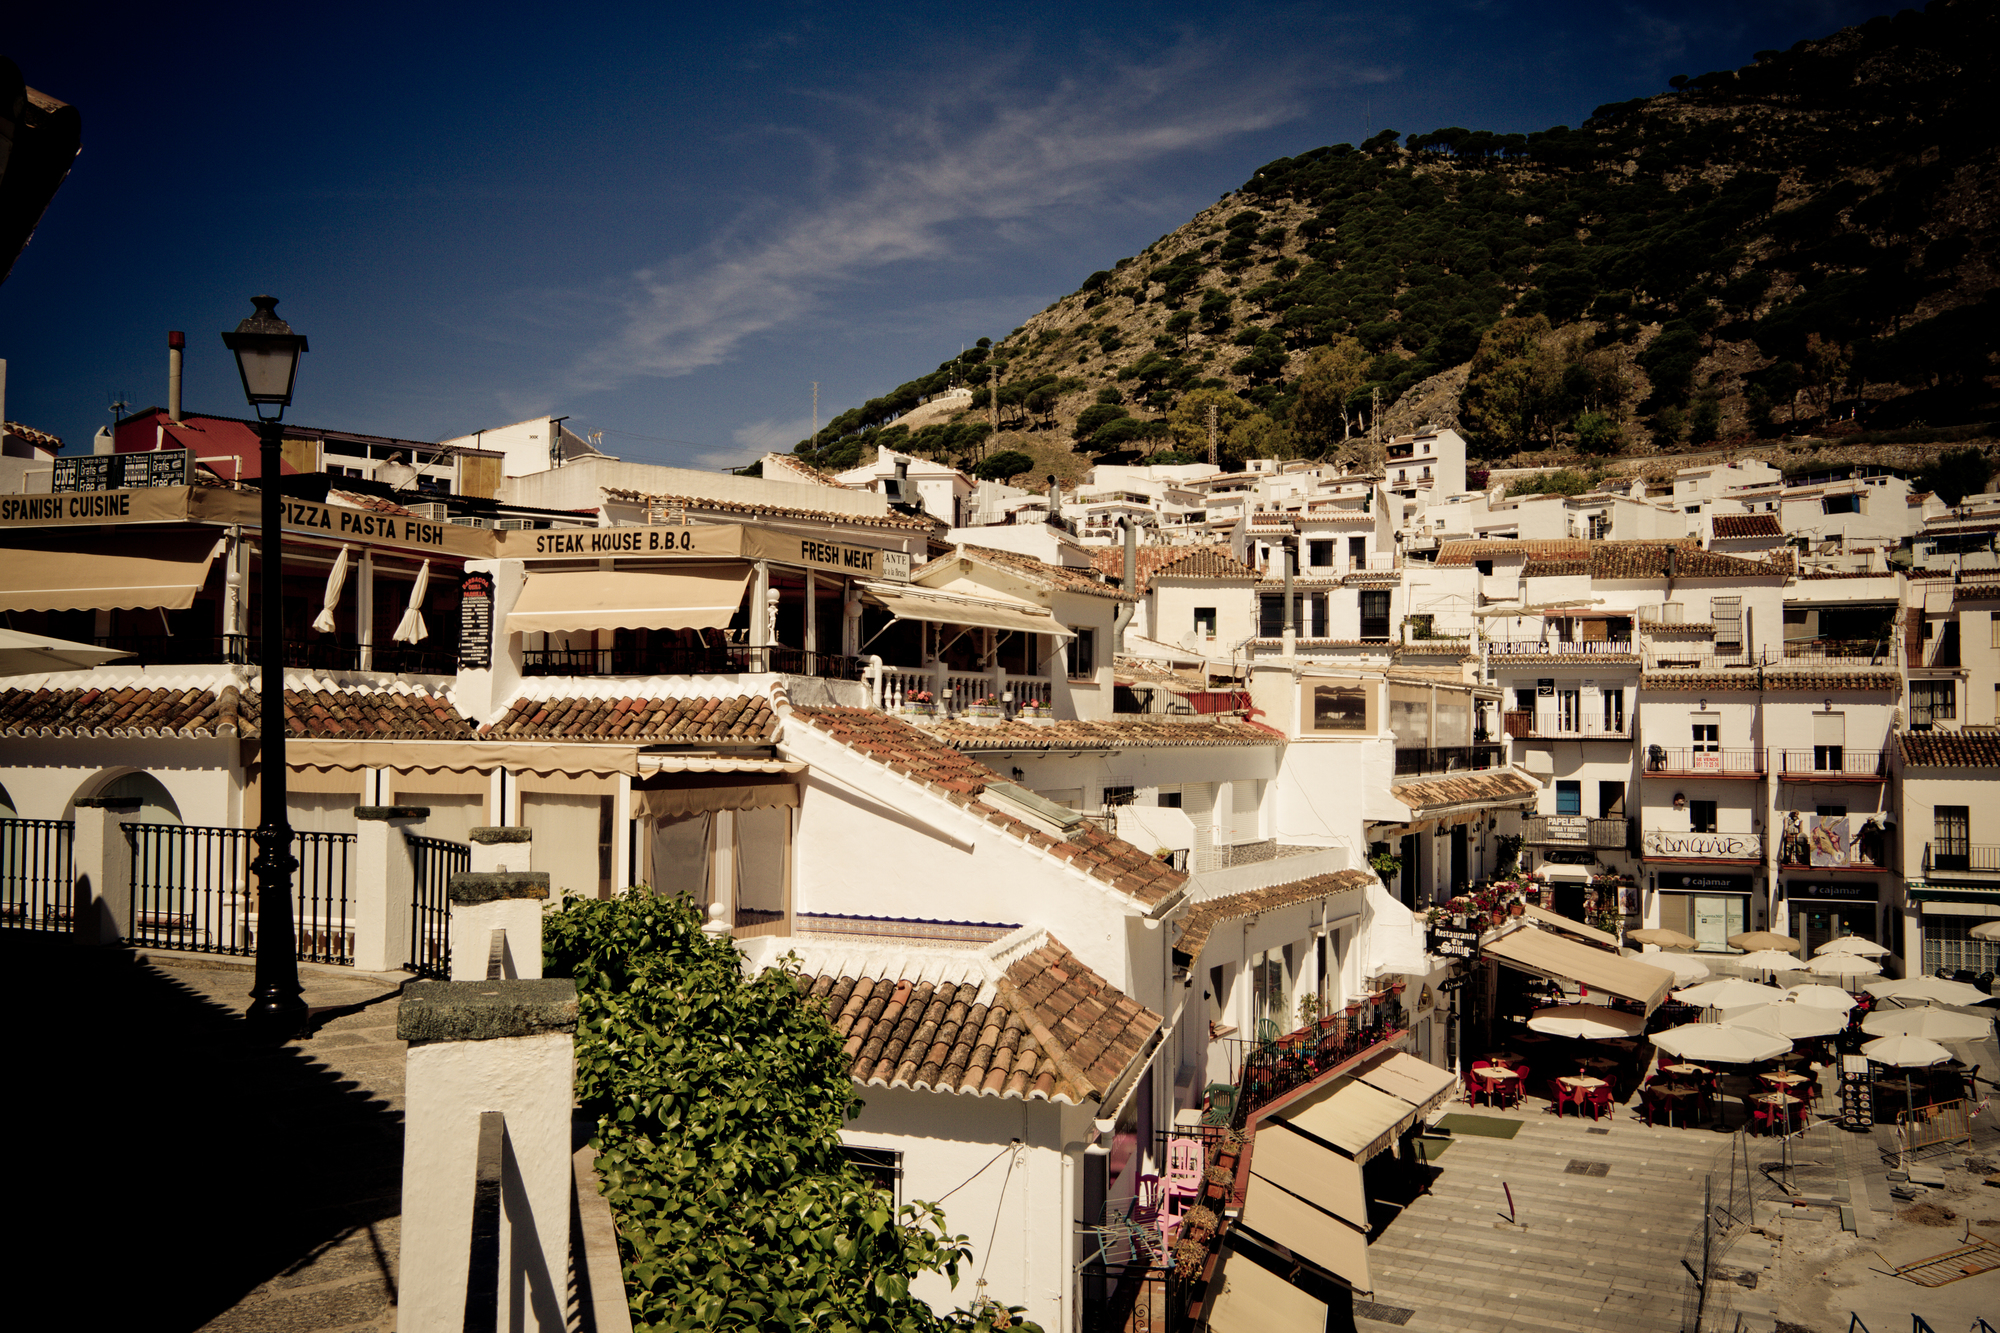 Mijas is a very beautiful city, narrow streets painted in white, small coffee shops and restaurants